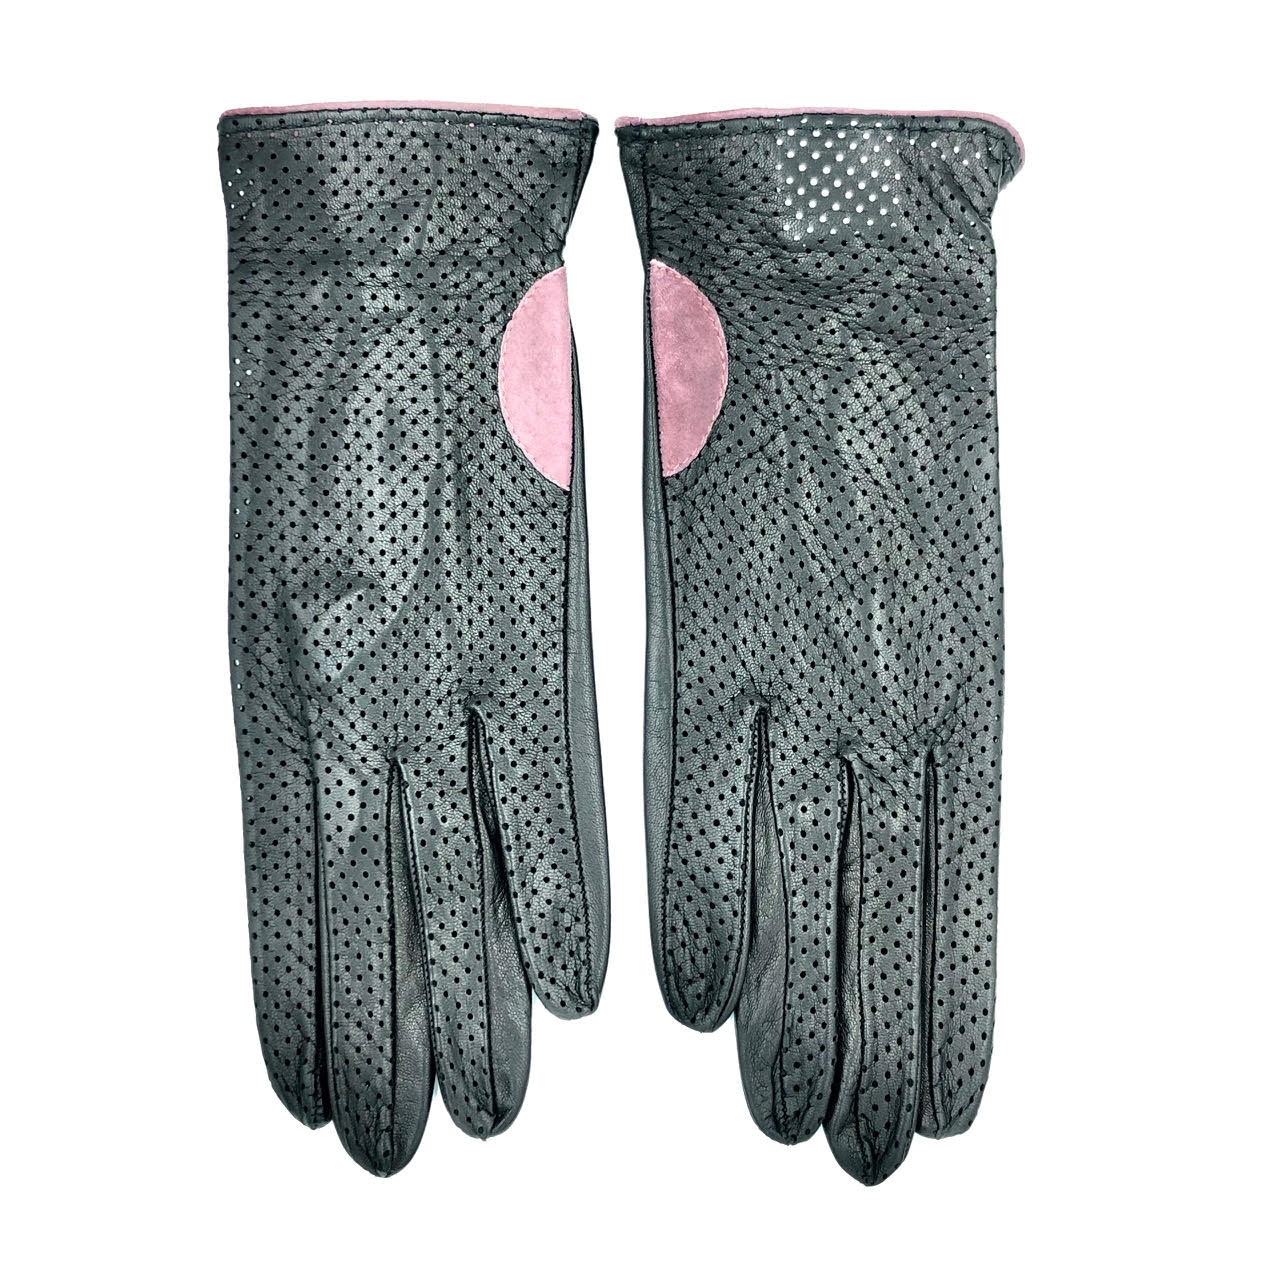 Unlined leather gloves - Black/Pink